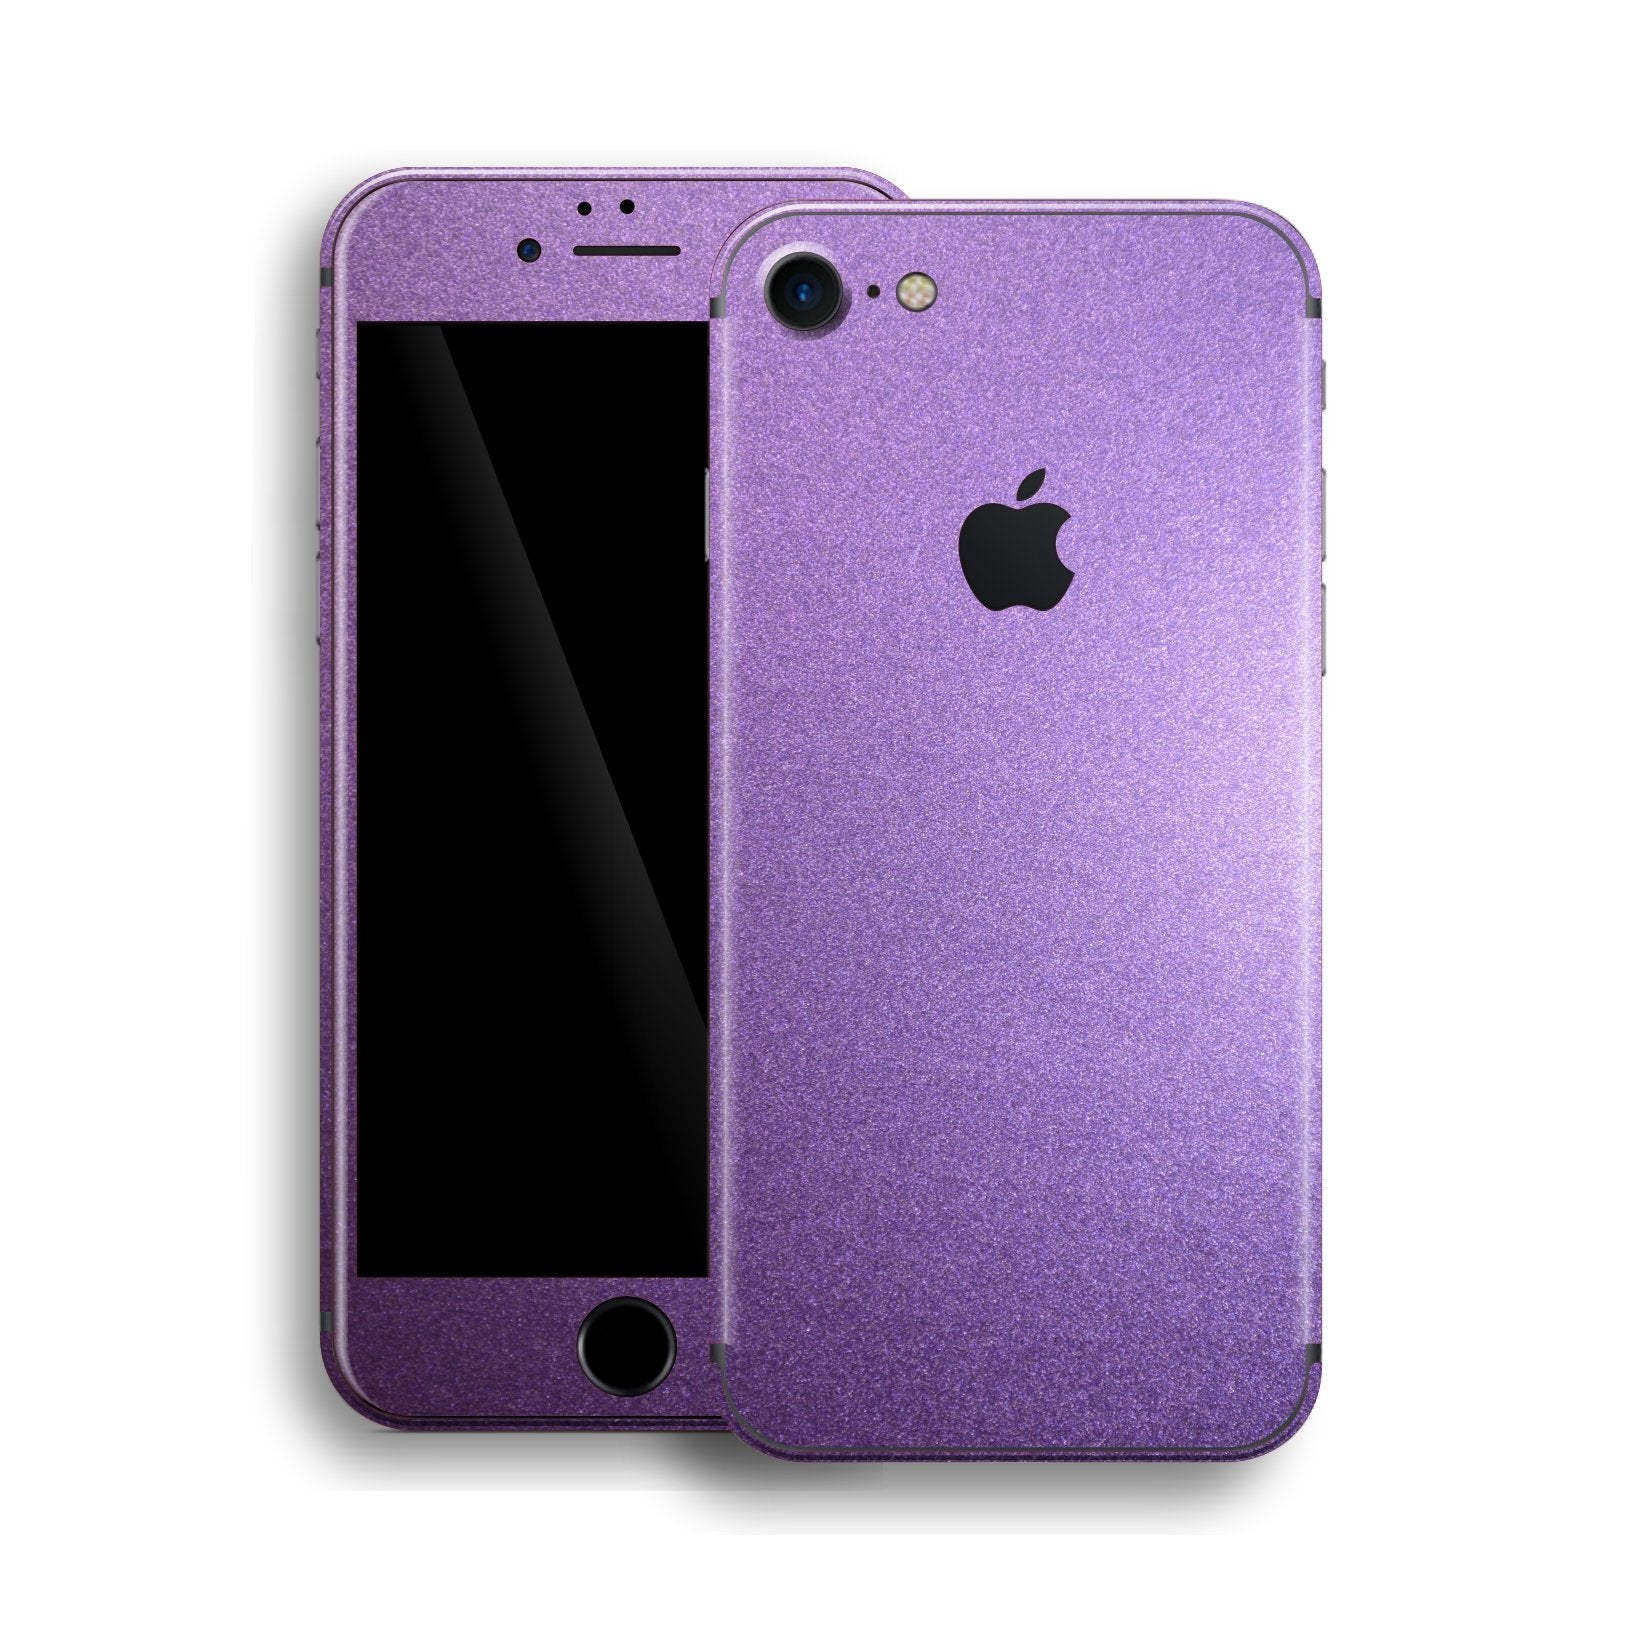 iPhone 8 Violet Matt Matte Metallic Skin, Wrap, Decal, Protector, Cover by EasySkinz | EasySkinz.com